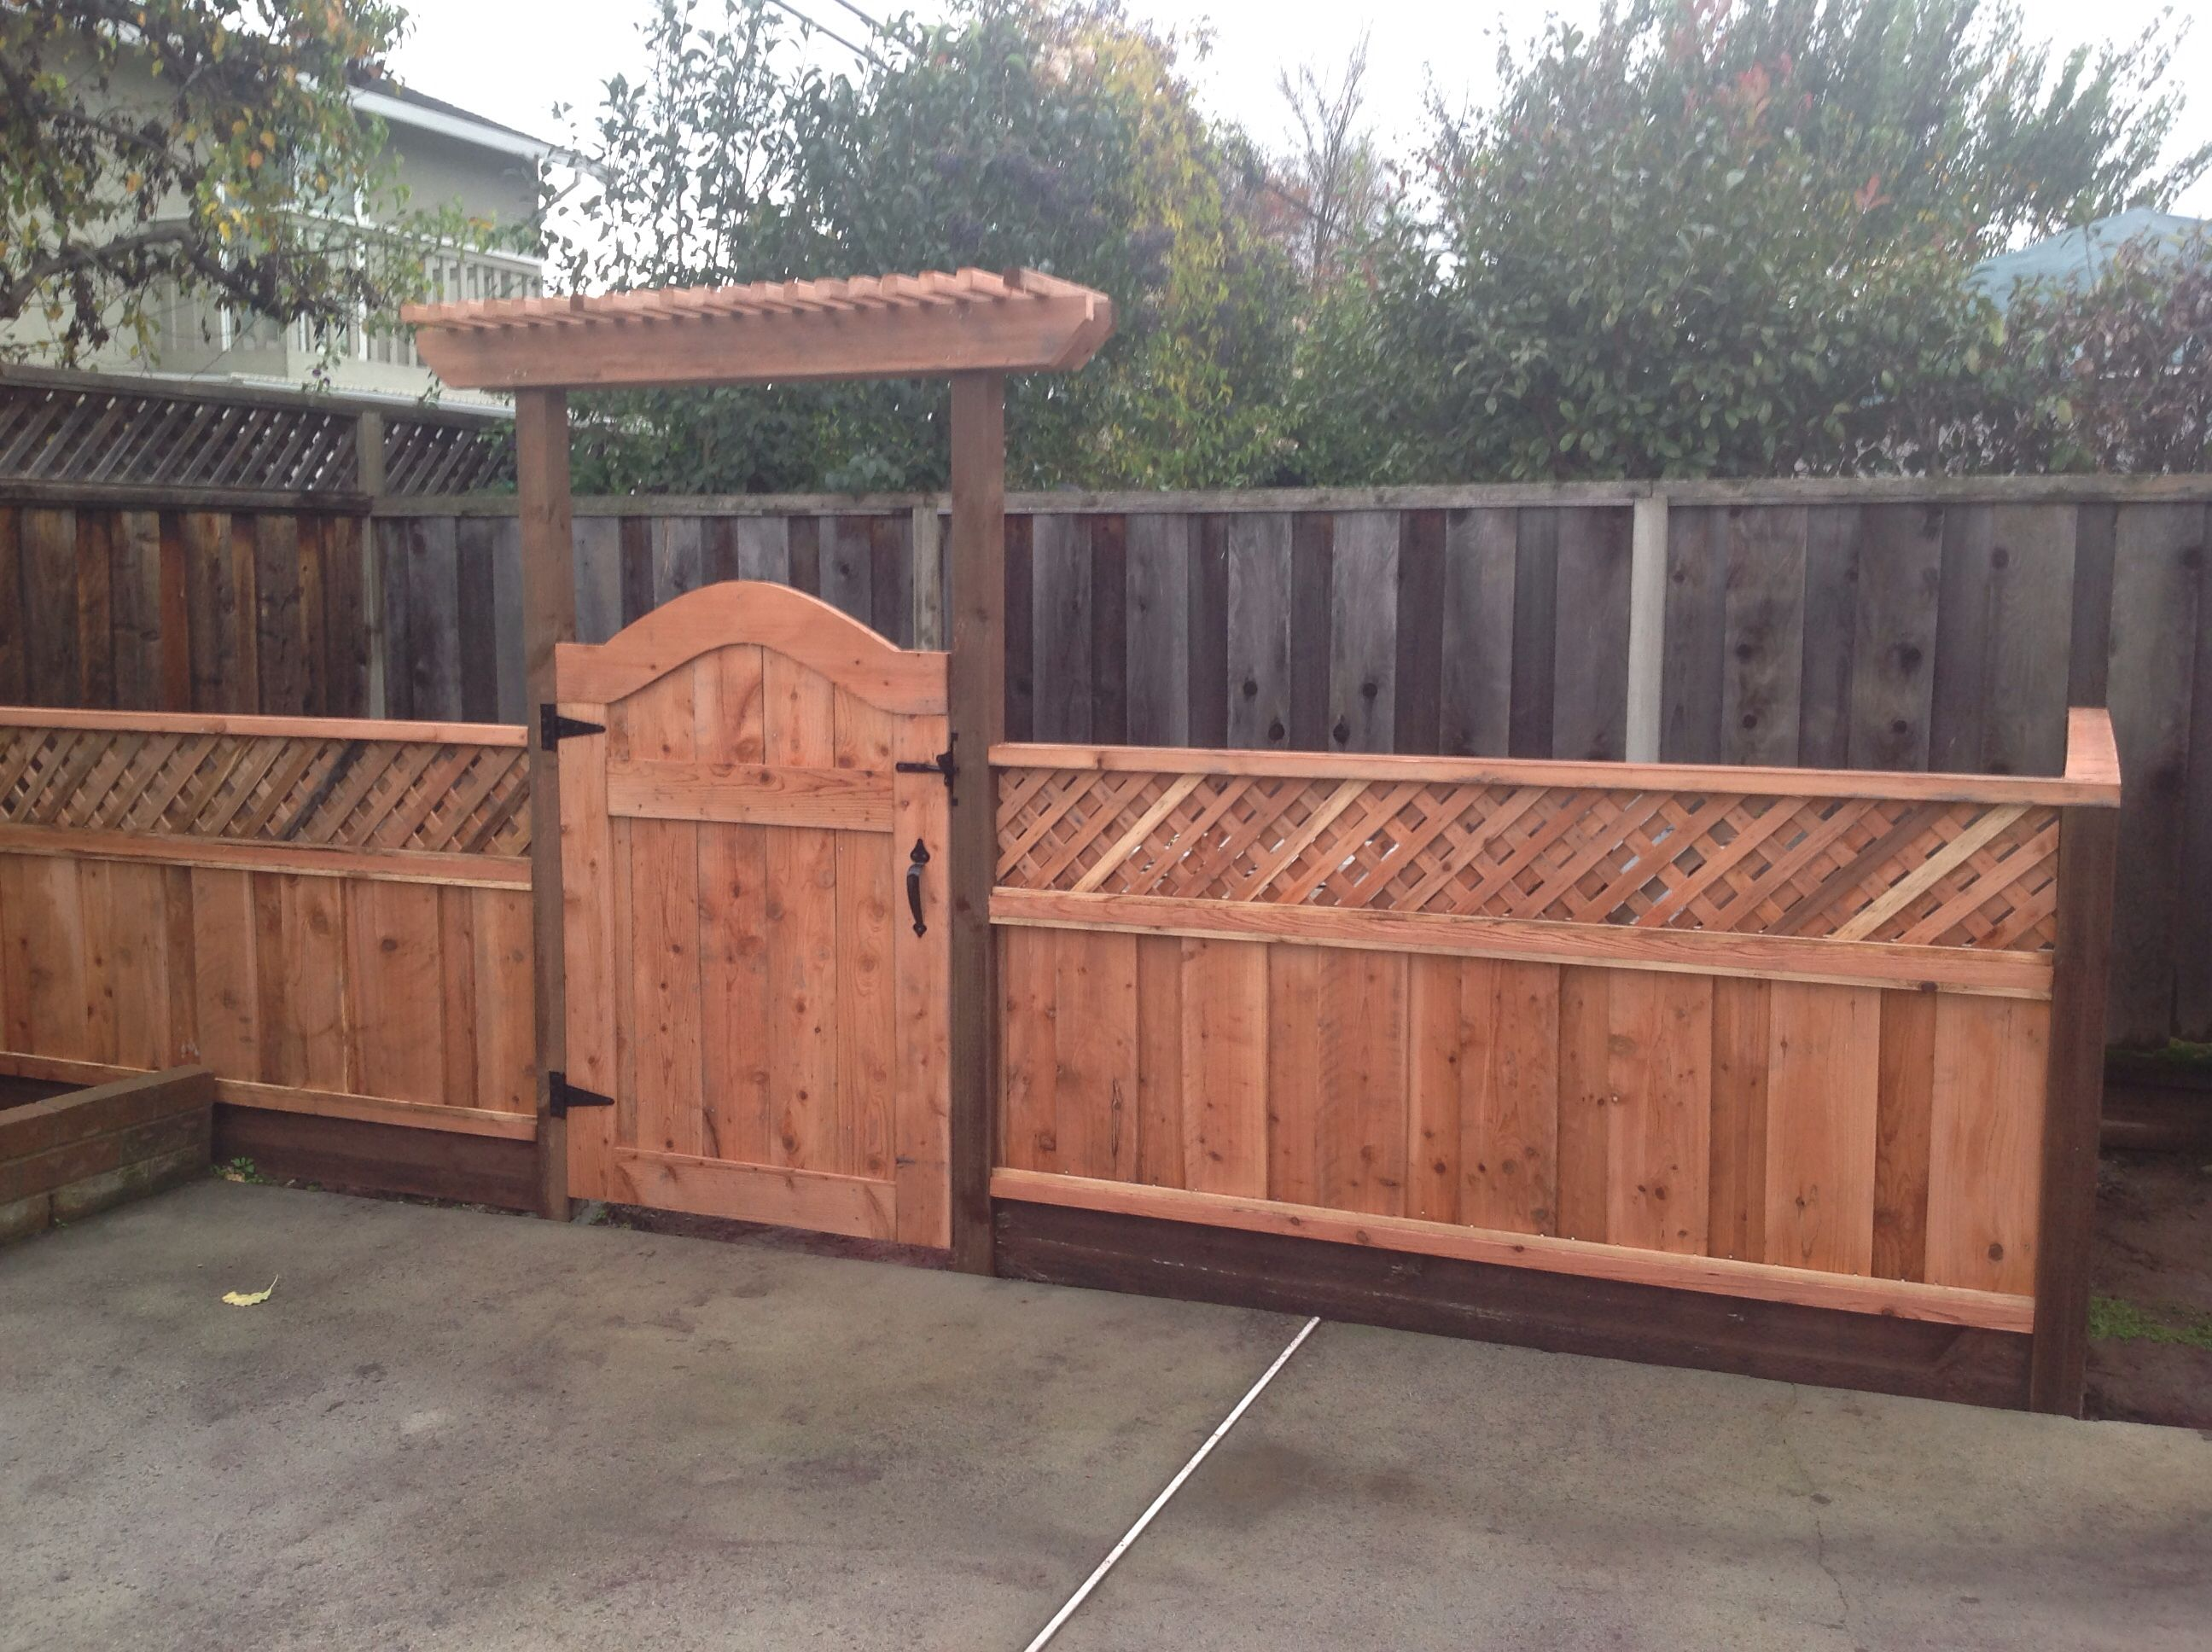 After Pool equipment fence with gate and small arbor